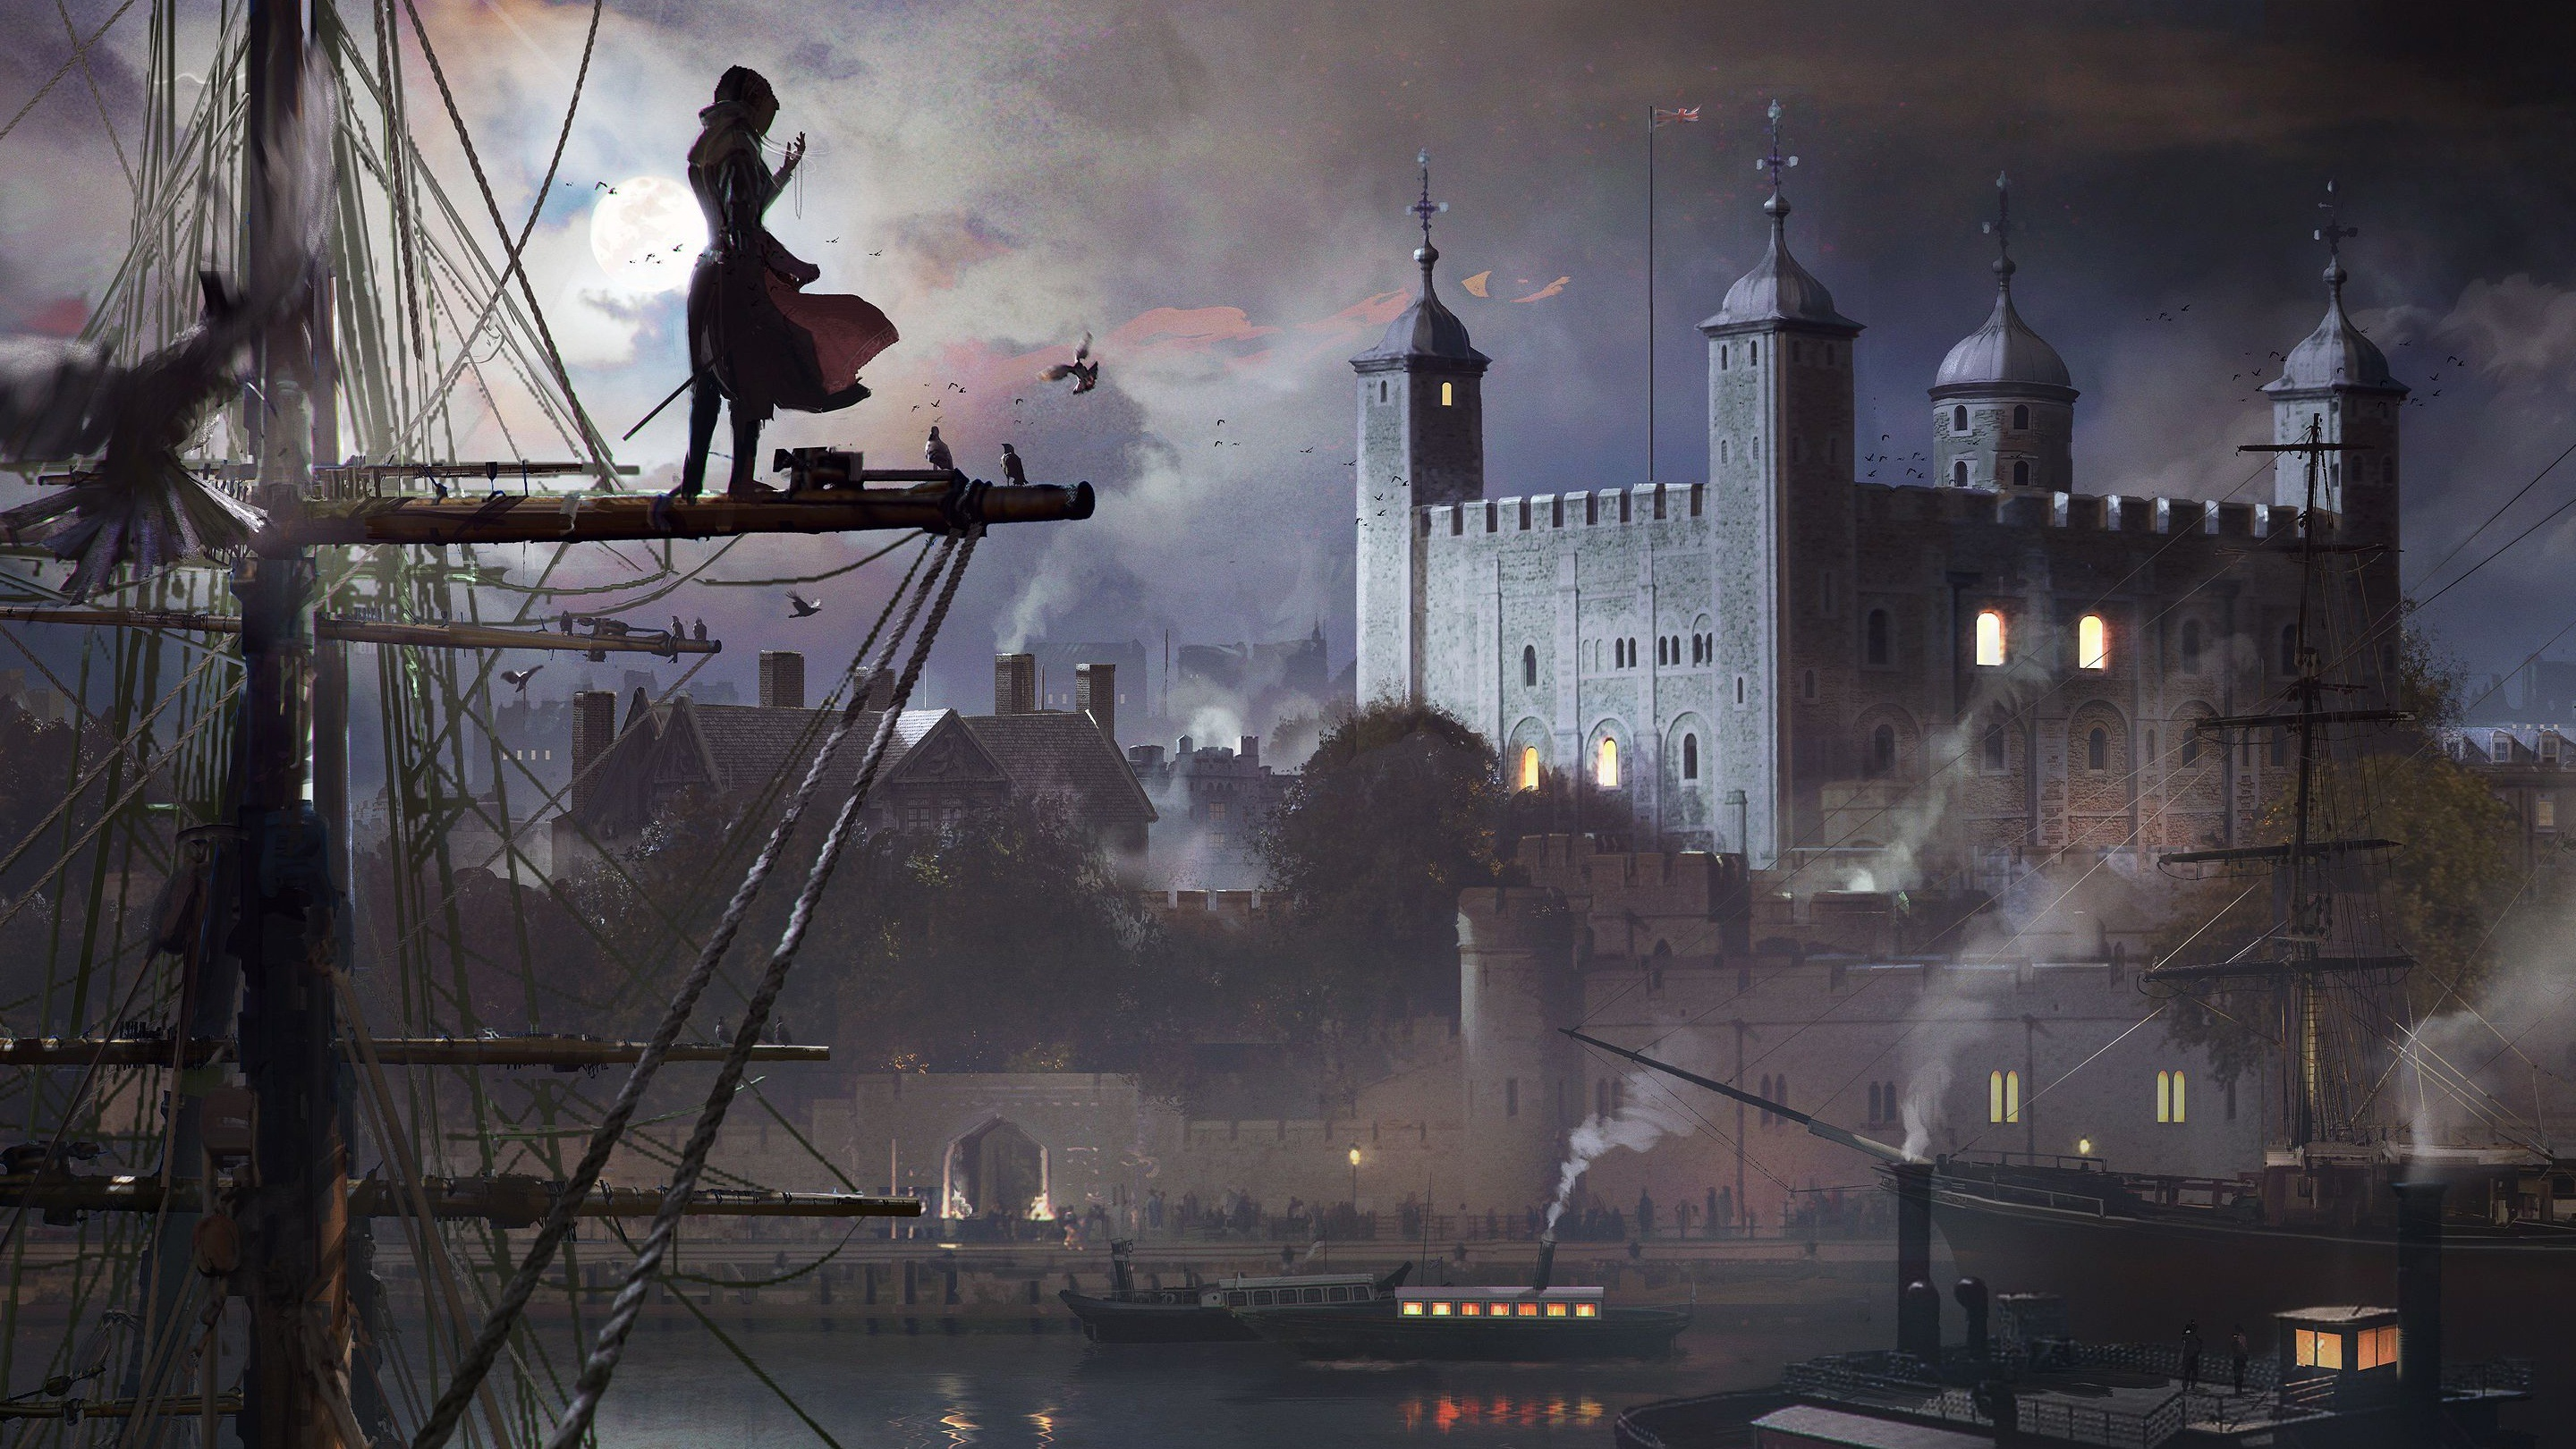 Download-Assassins-Creed-Syndicate-Evie-Frye-1920x1080-wallpaper-wp3404785